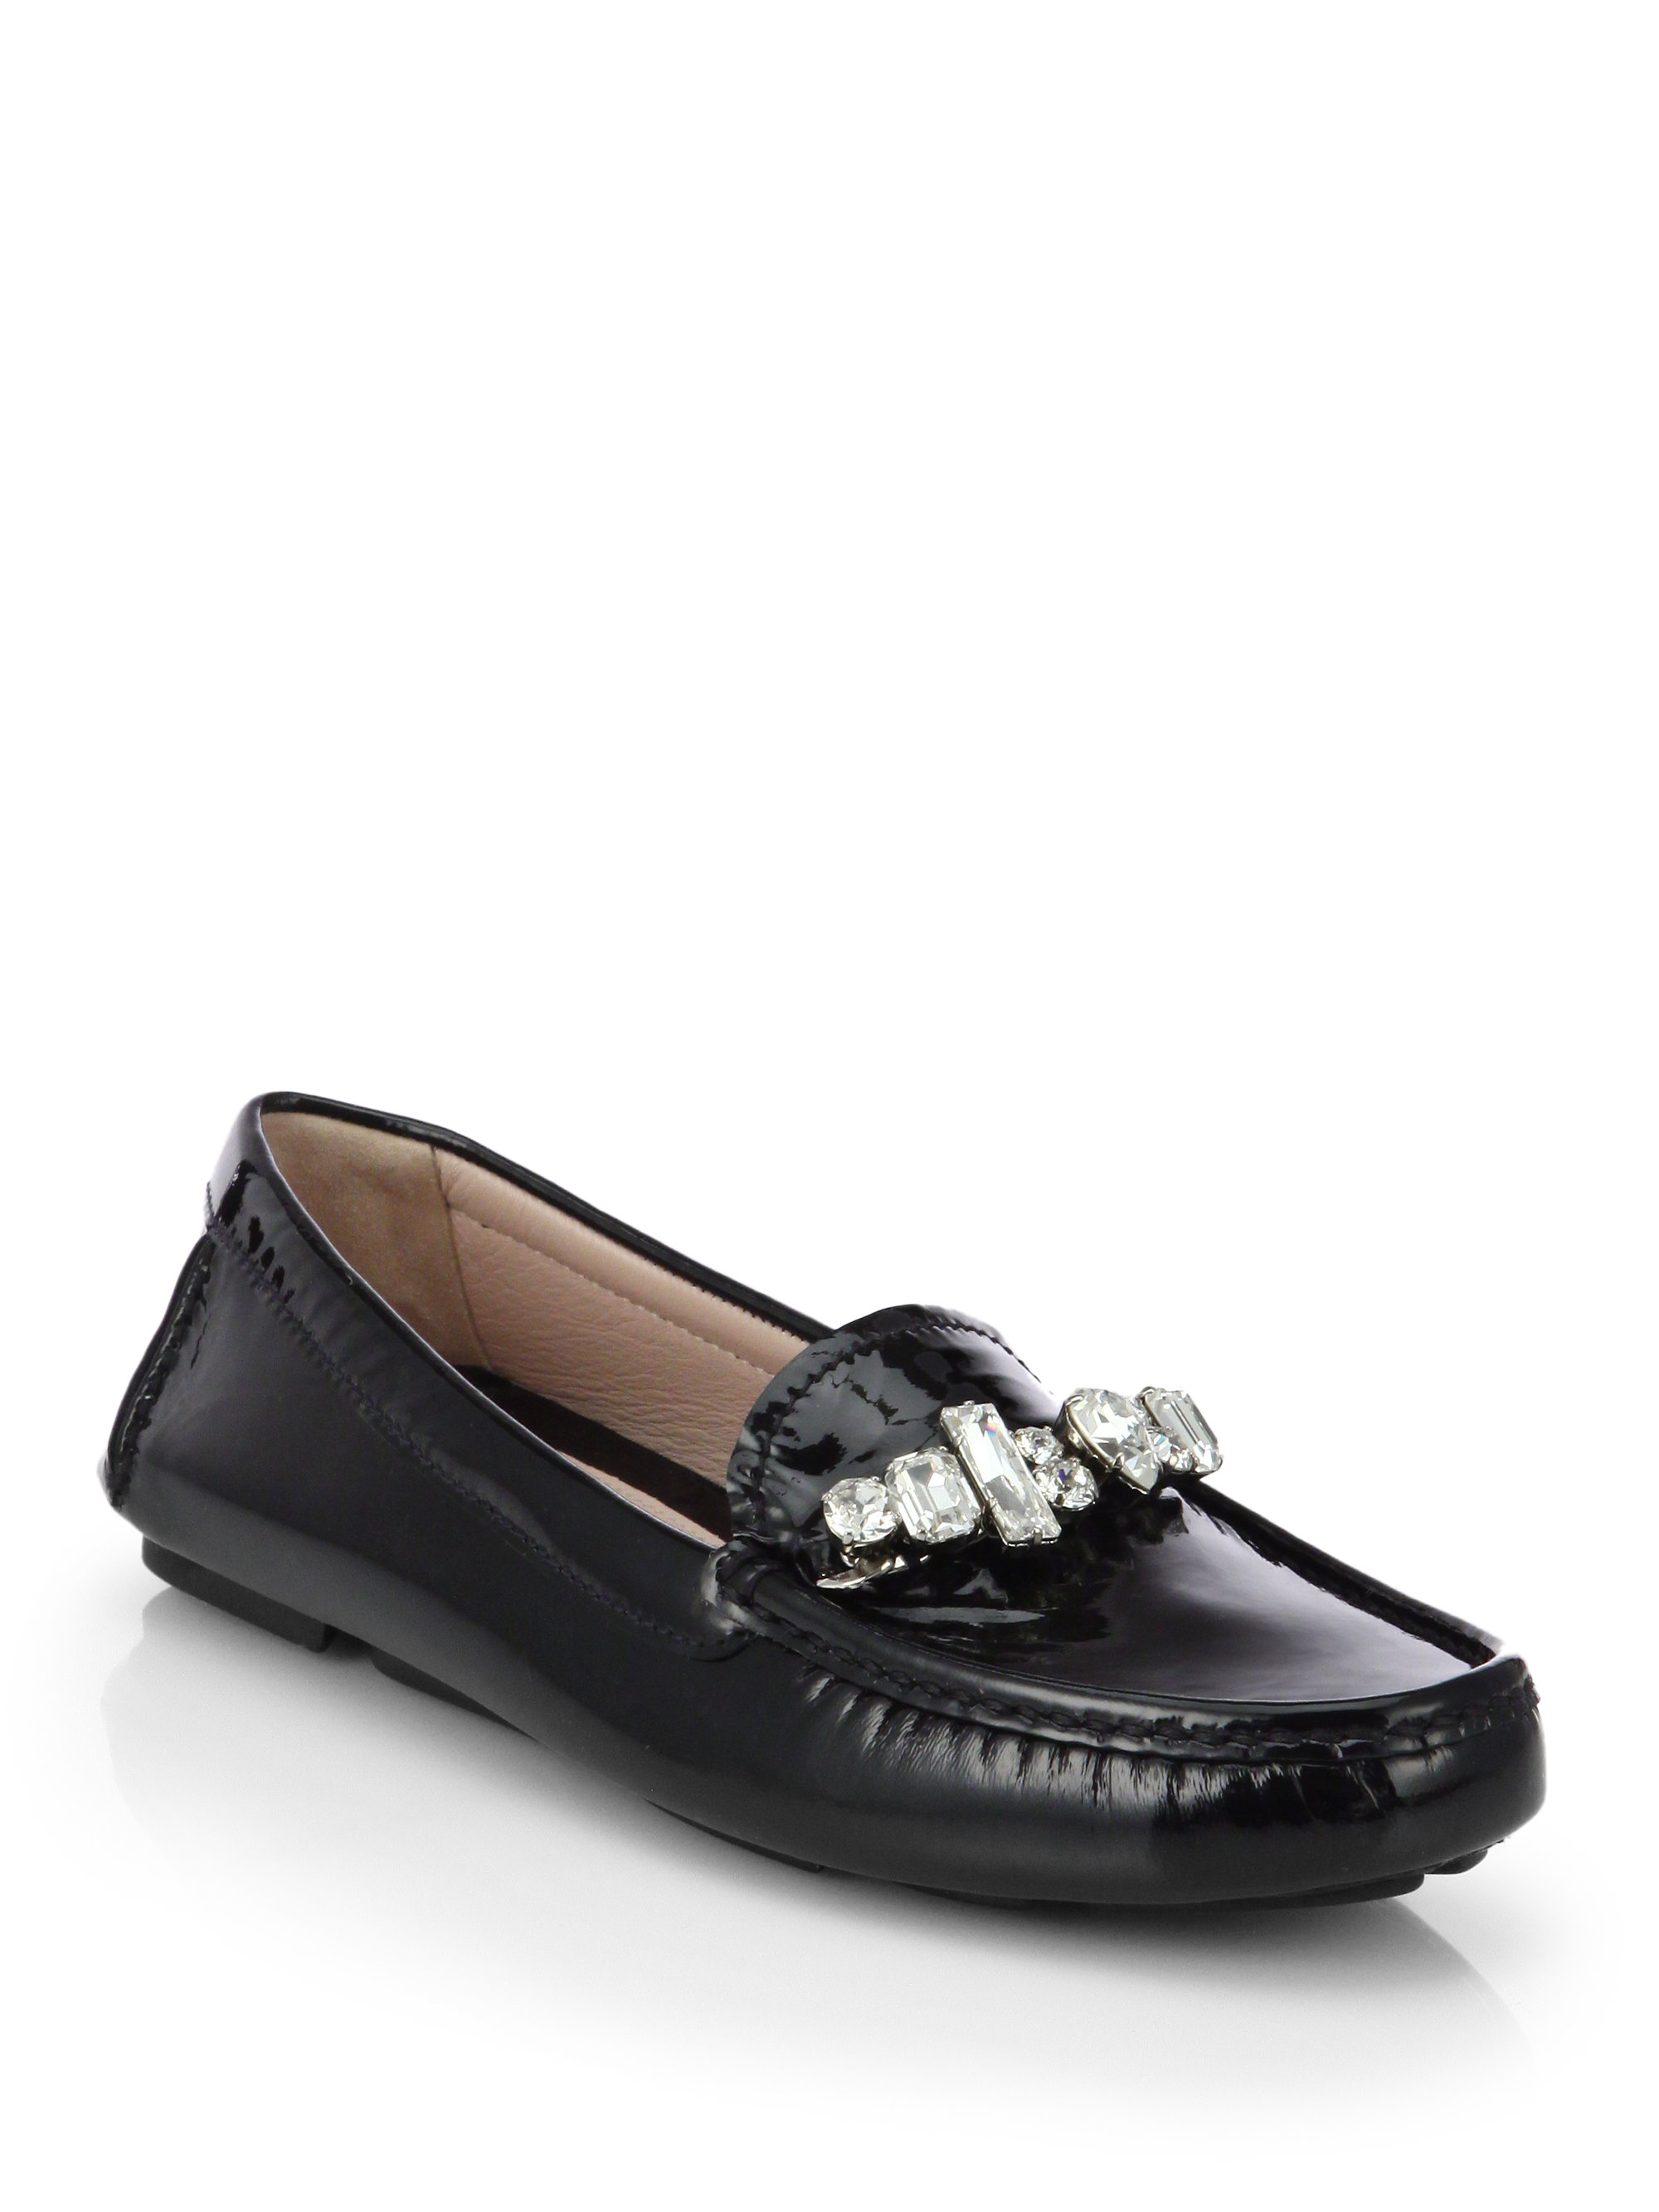 Miu Miu Crystal Patent Leather Loafers Am9T7